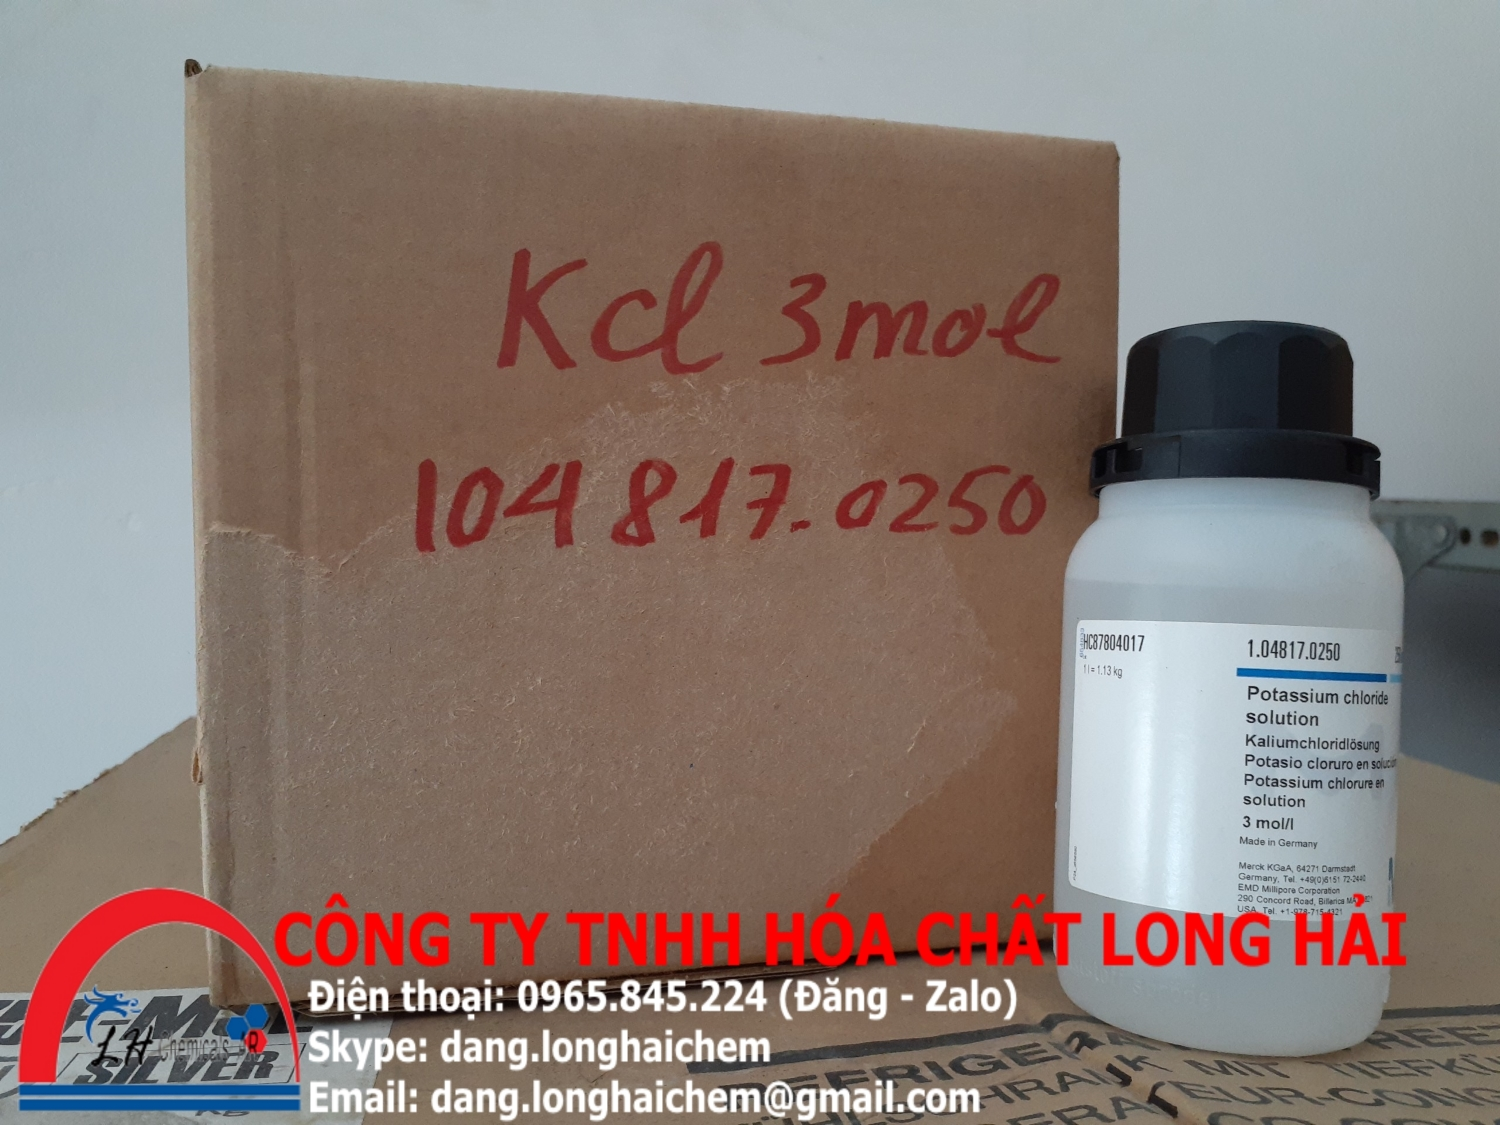 Potassium chloride solution (Merck) | 104817